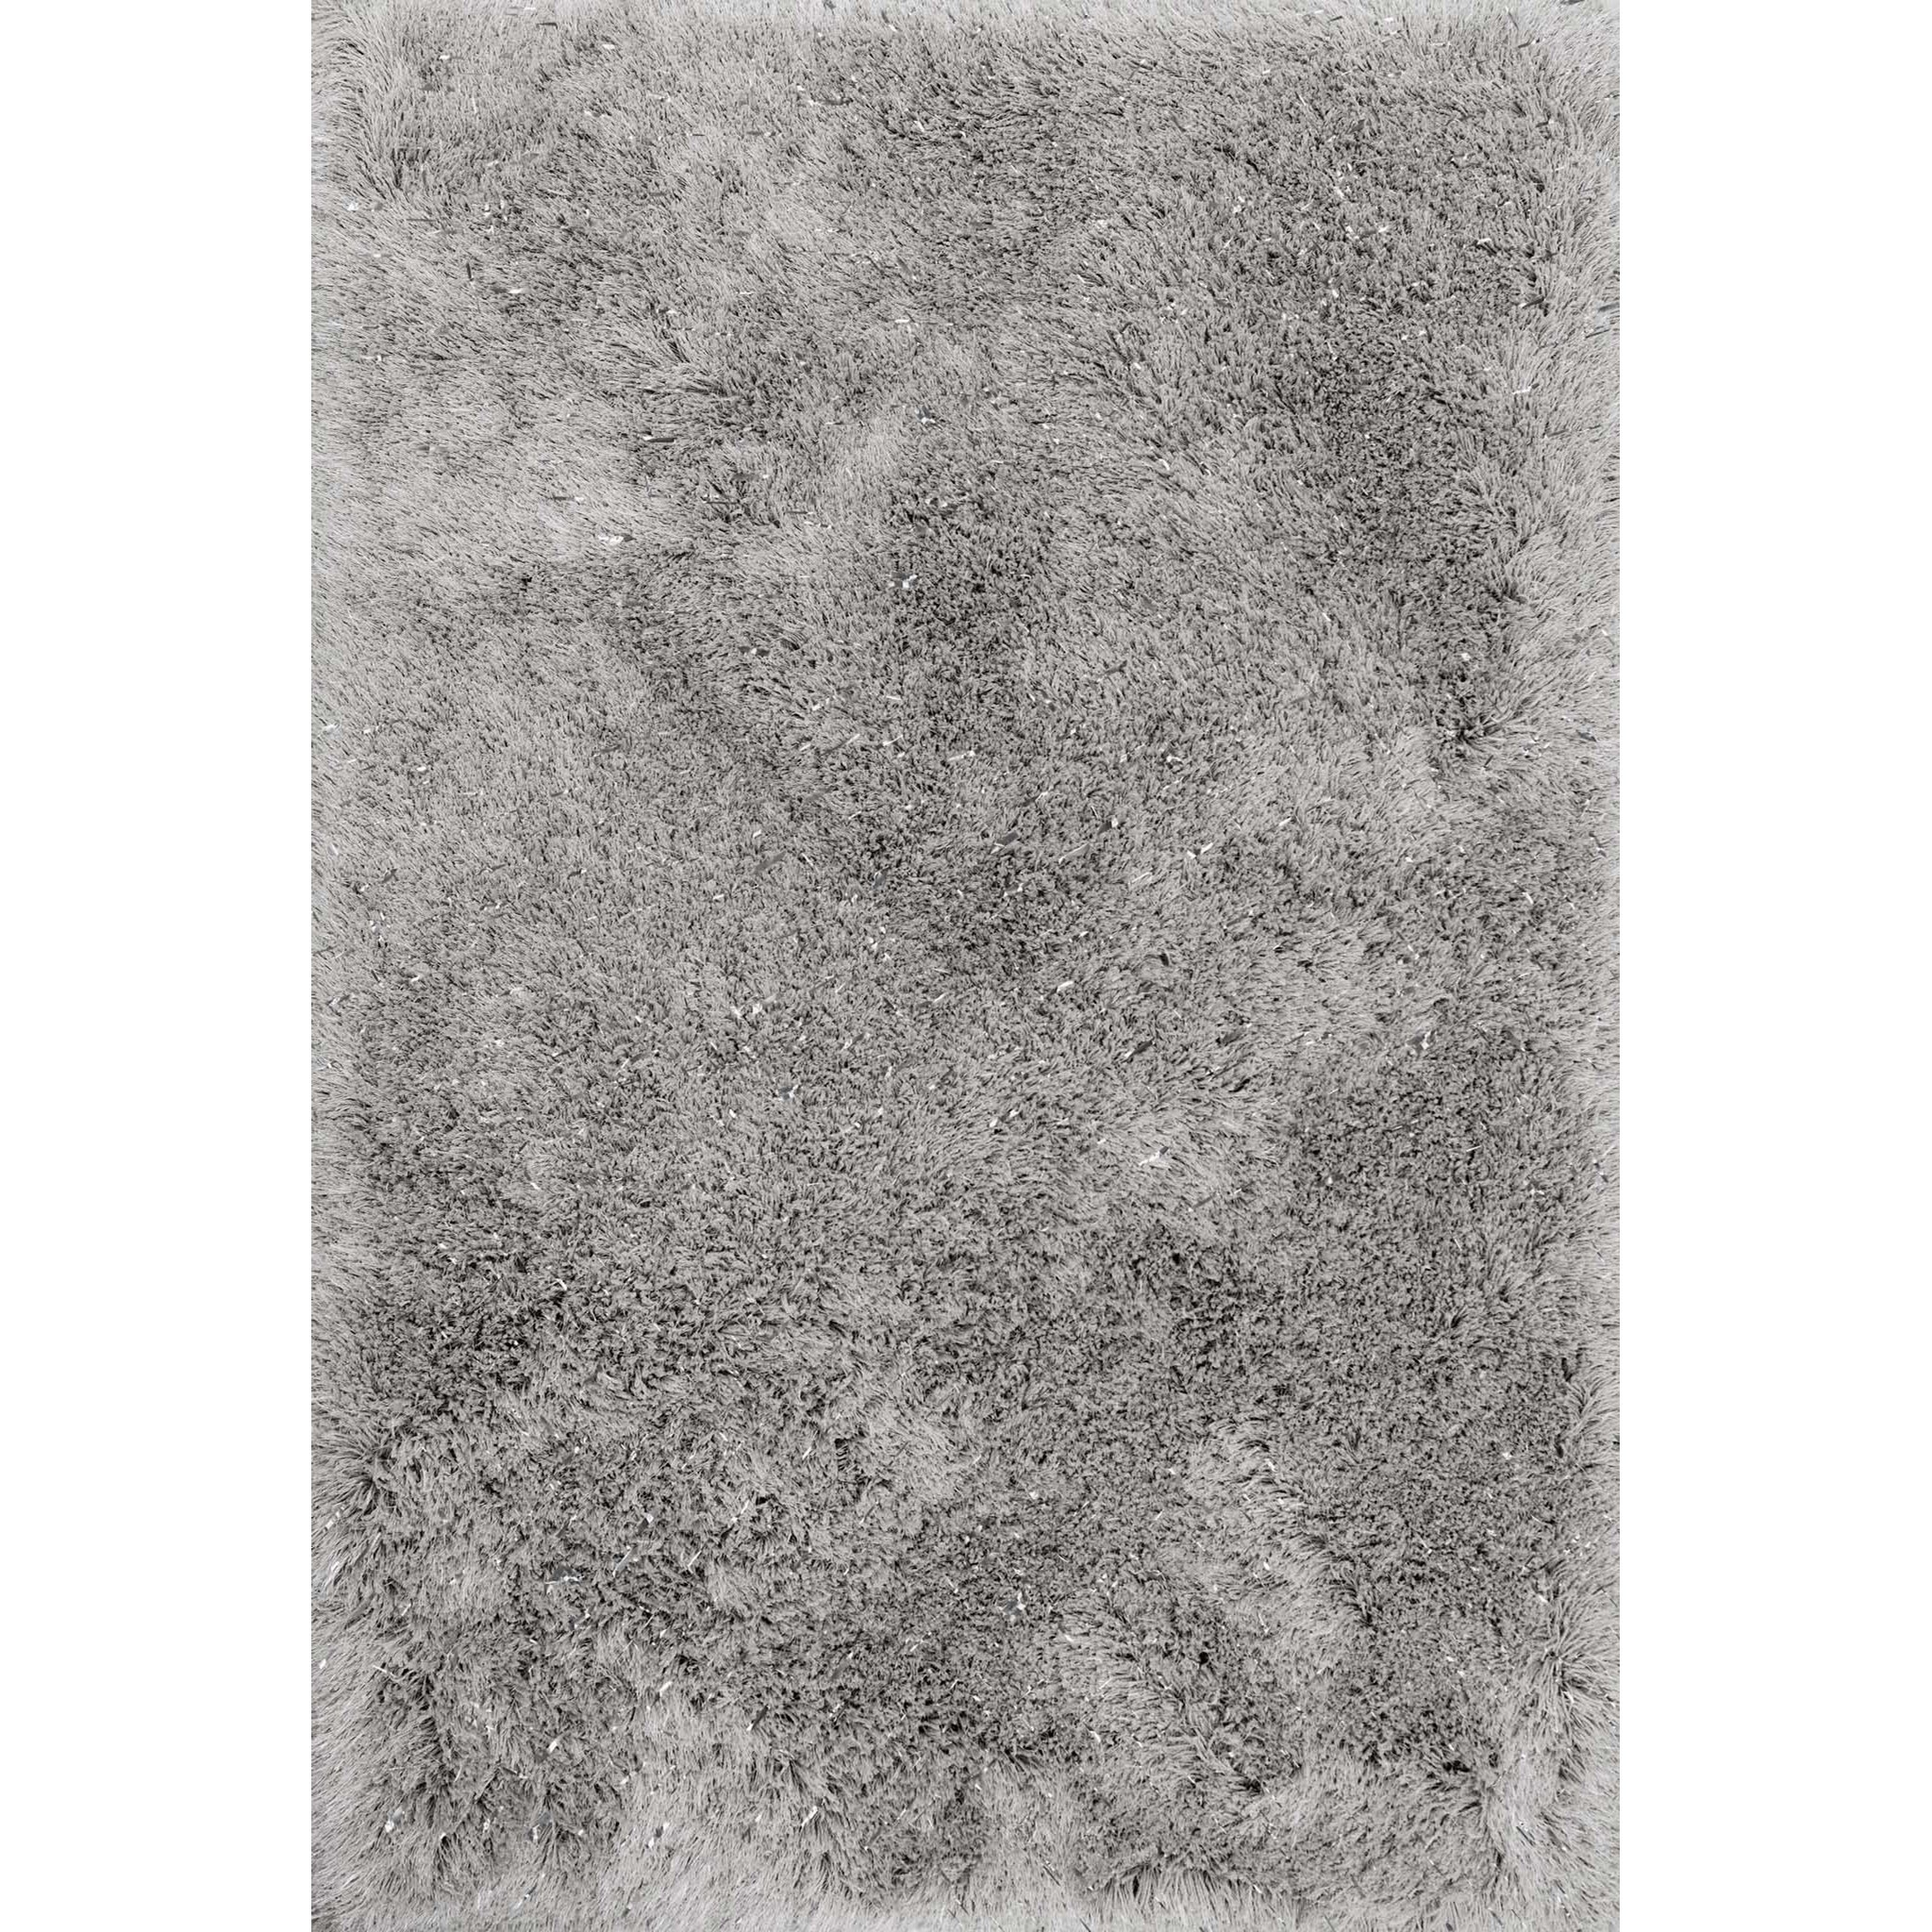 "CELESTE SHAG 3'-6"" X 5'-6"" Rug by Loloi Rugs at Belfort Furniture"